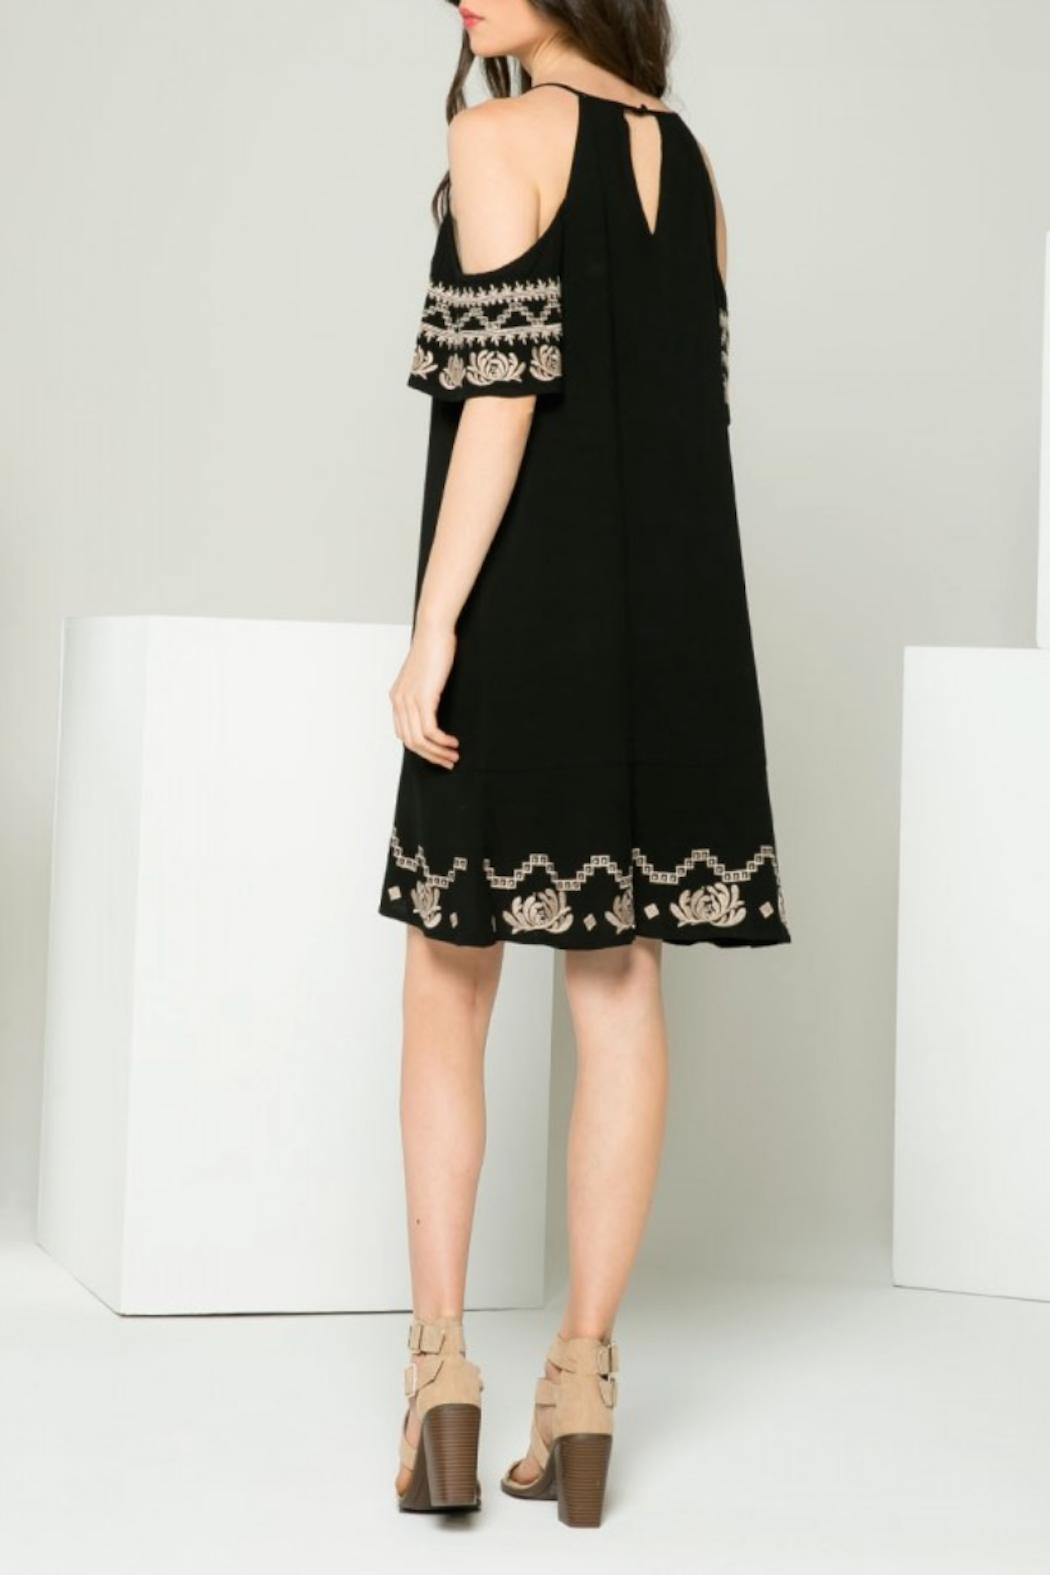 THML Clothing Gwen Embroidered Dress - Back Cropped Image